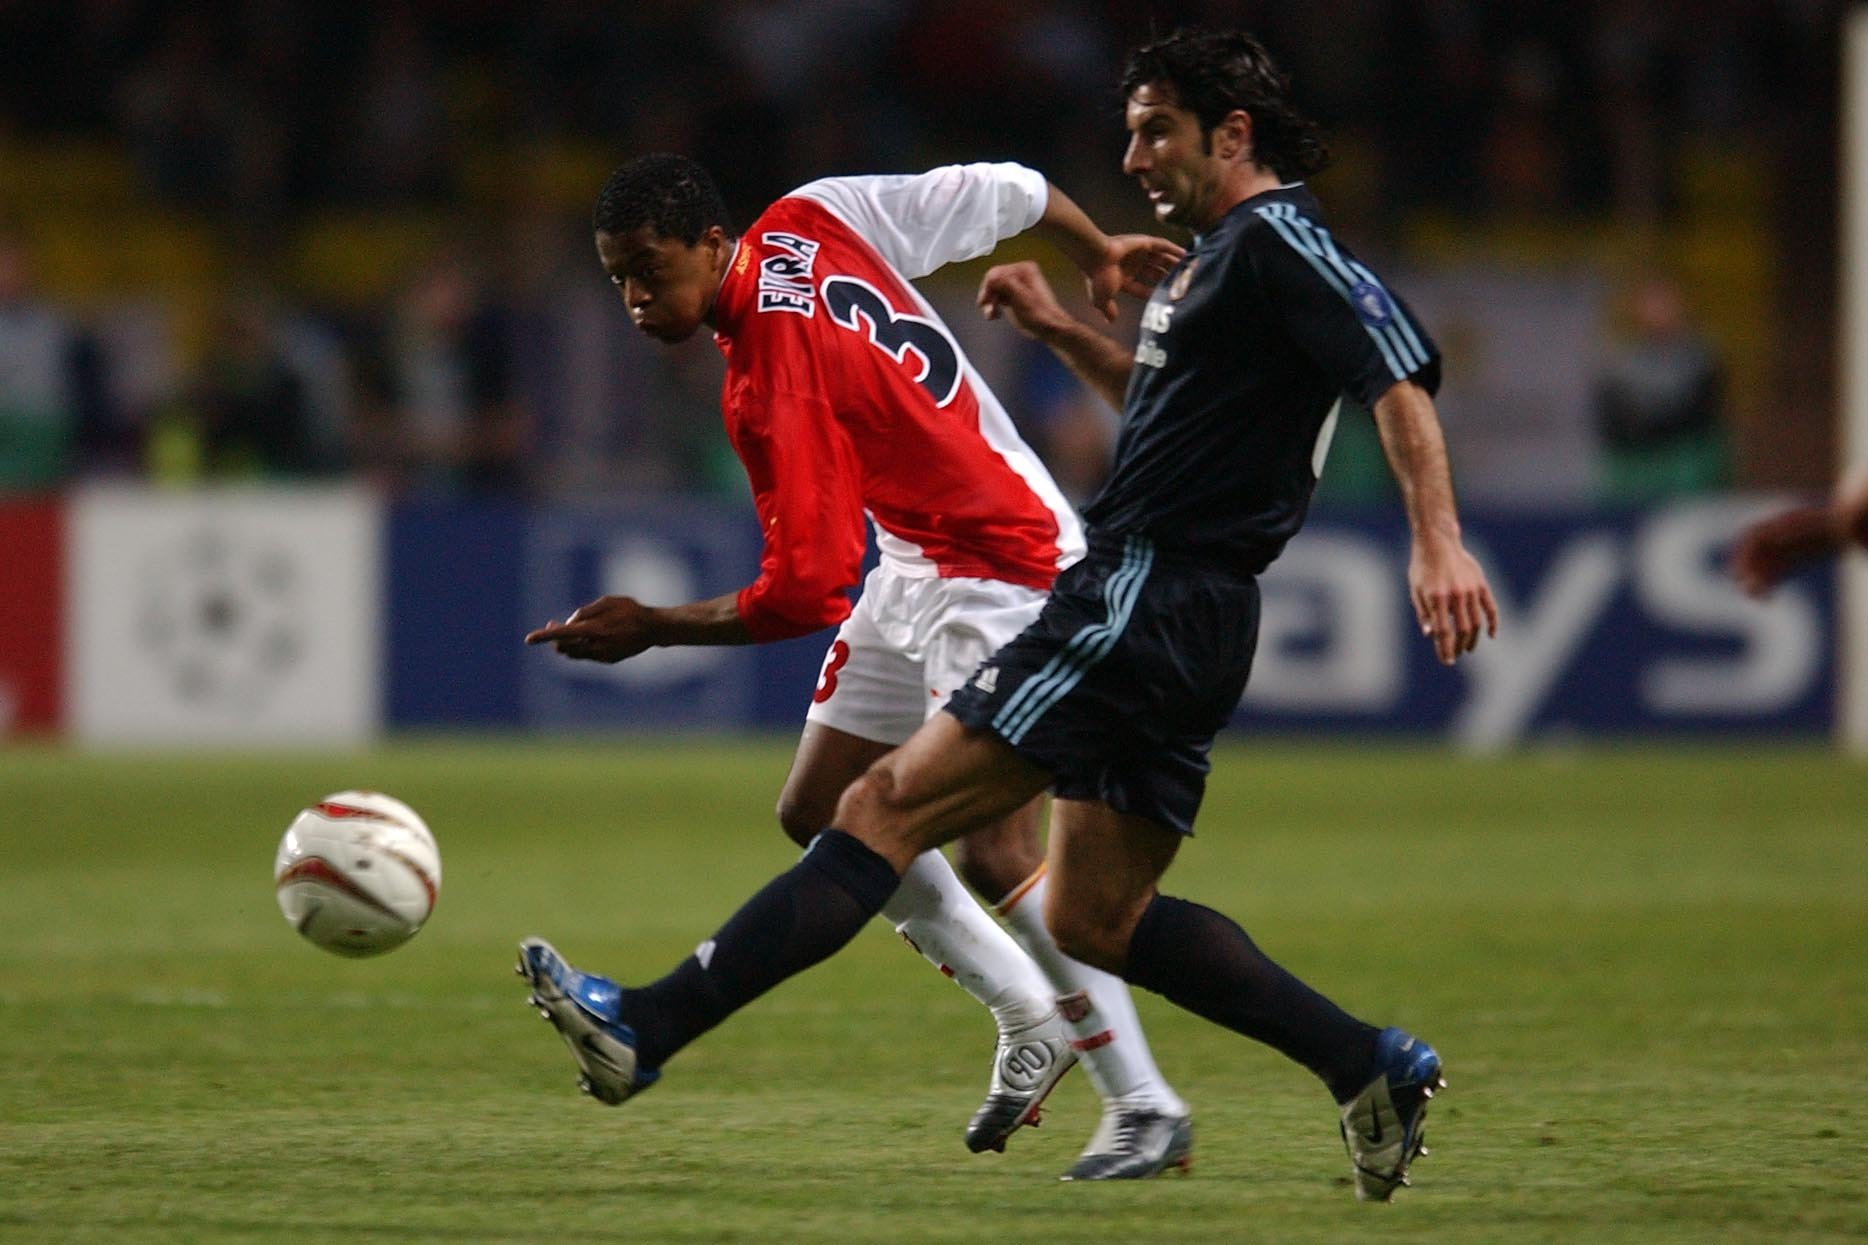 06.04.2004, Stade Louis II, Monaco, MCO, UEFA CL, AS Monaco vs Real Madrid, Viertelfinale, im Bild evra patrice, figo luis // during the UEFA Champions League quarterfinals match between AS Monaco and Real Madrid at the Stade Louis II in Monaco, Monaco on 2004/04/06. EXPA Pictures © 2018, PhotoCredit: EXPA/ Pressesports/ PREVOST *****ATTENTION - for AUT, SLO, CRO, SRB, BIH, MAZ, POL only***** LIGA MISTRZOW PILKA NOZNA MECZ MONACO VS REAL MADRYT FOT.EXPA/NEWSPIX.PL Austria, Italy, Spain, Slovenia, Serbia, Croatia, Germany, UK, USA and Sweden OUT! --- Newspix.pl *** Local Caption *** www.newspix.pl mail us: info@newspix.pl call us: 0048 022 23 22 222 --- Polish Picture Agency by Ringier Axel Springer Poland